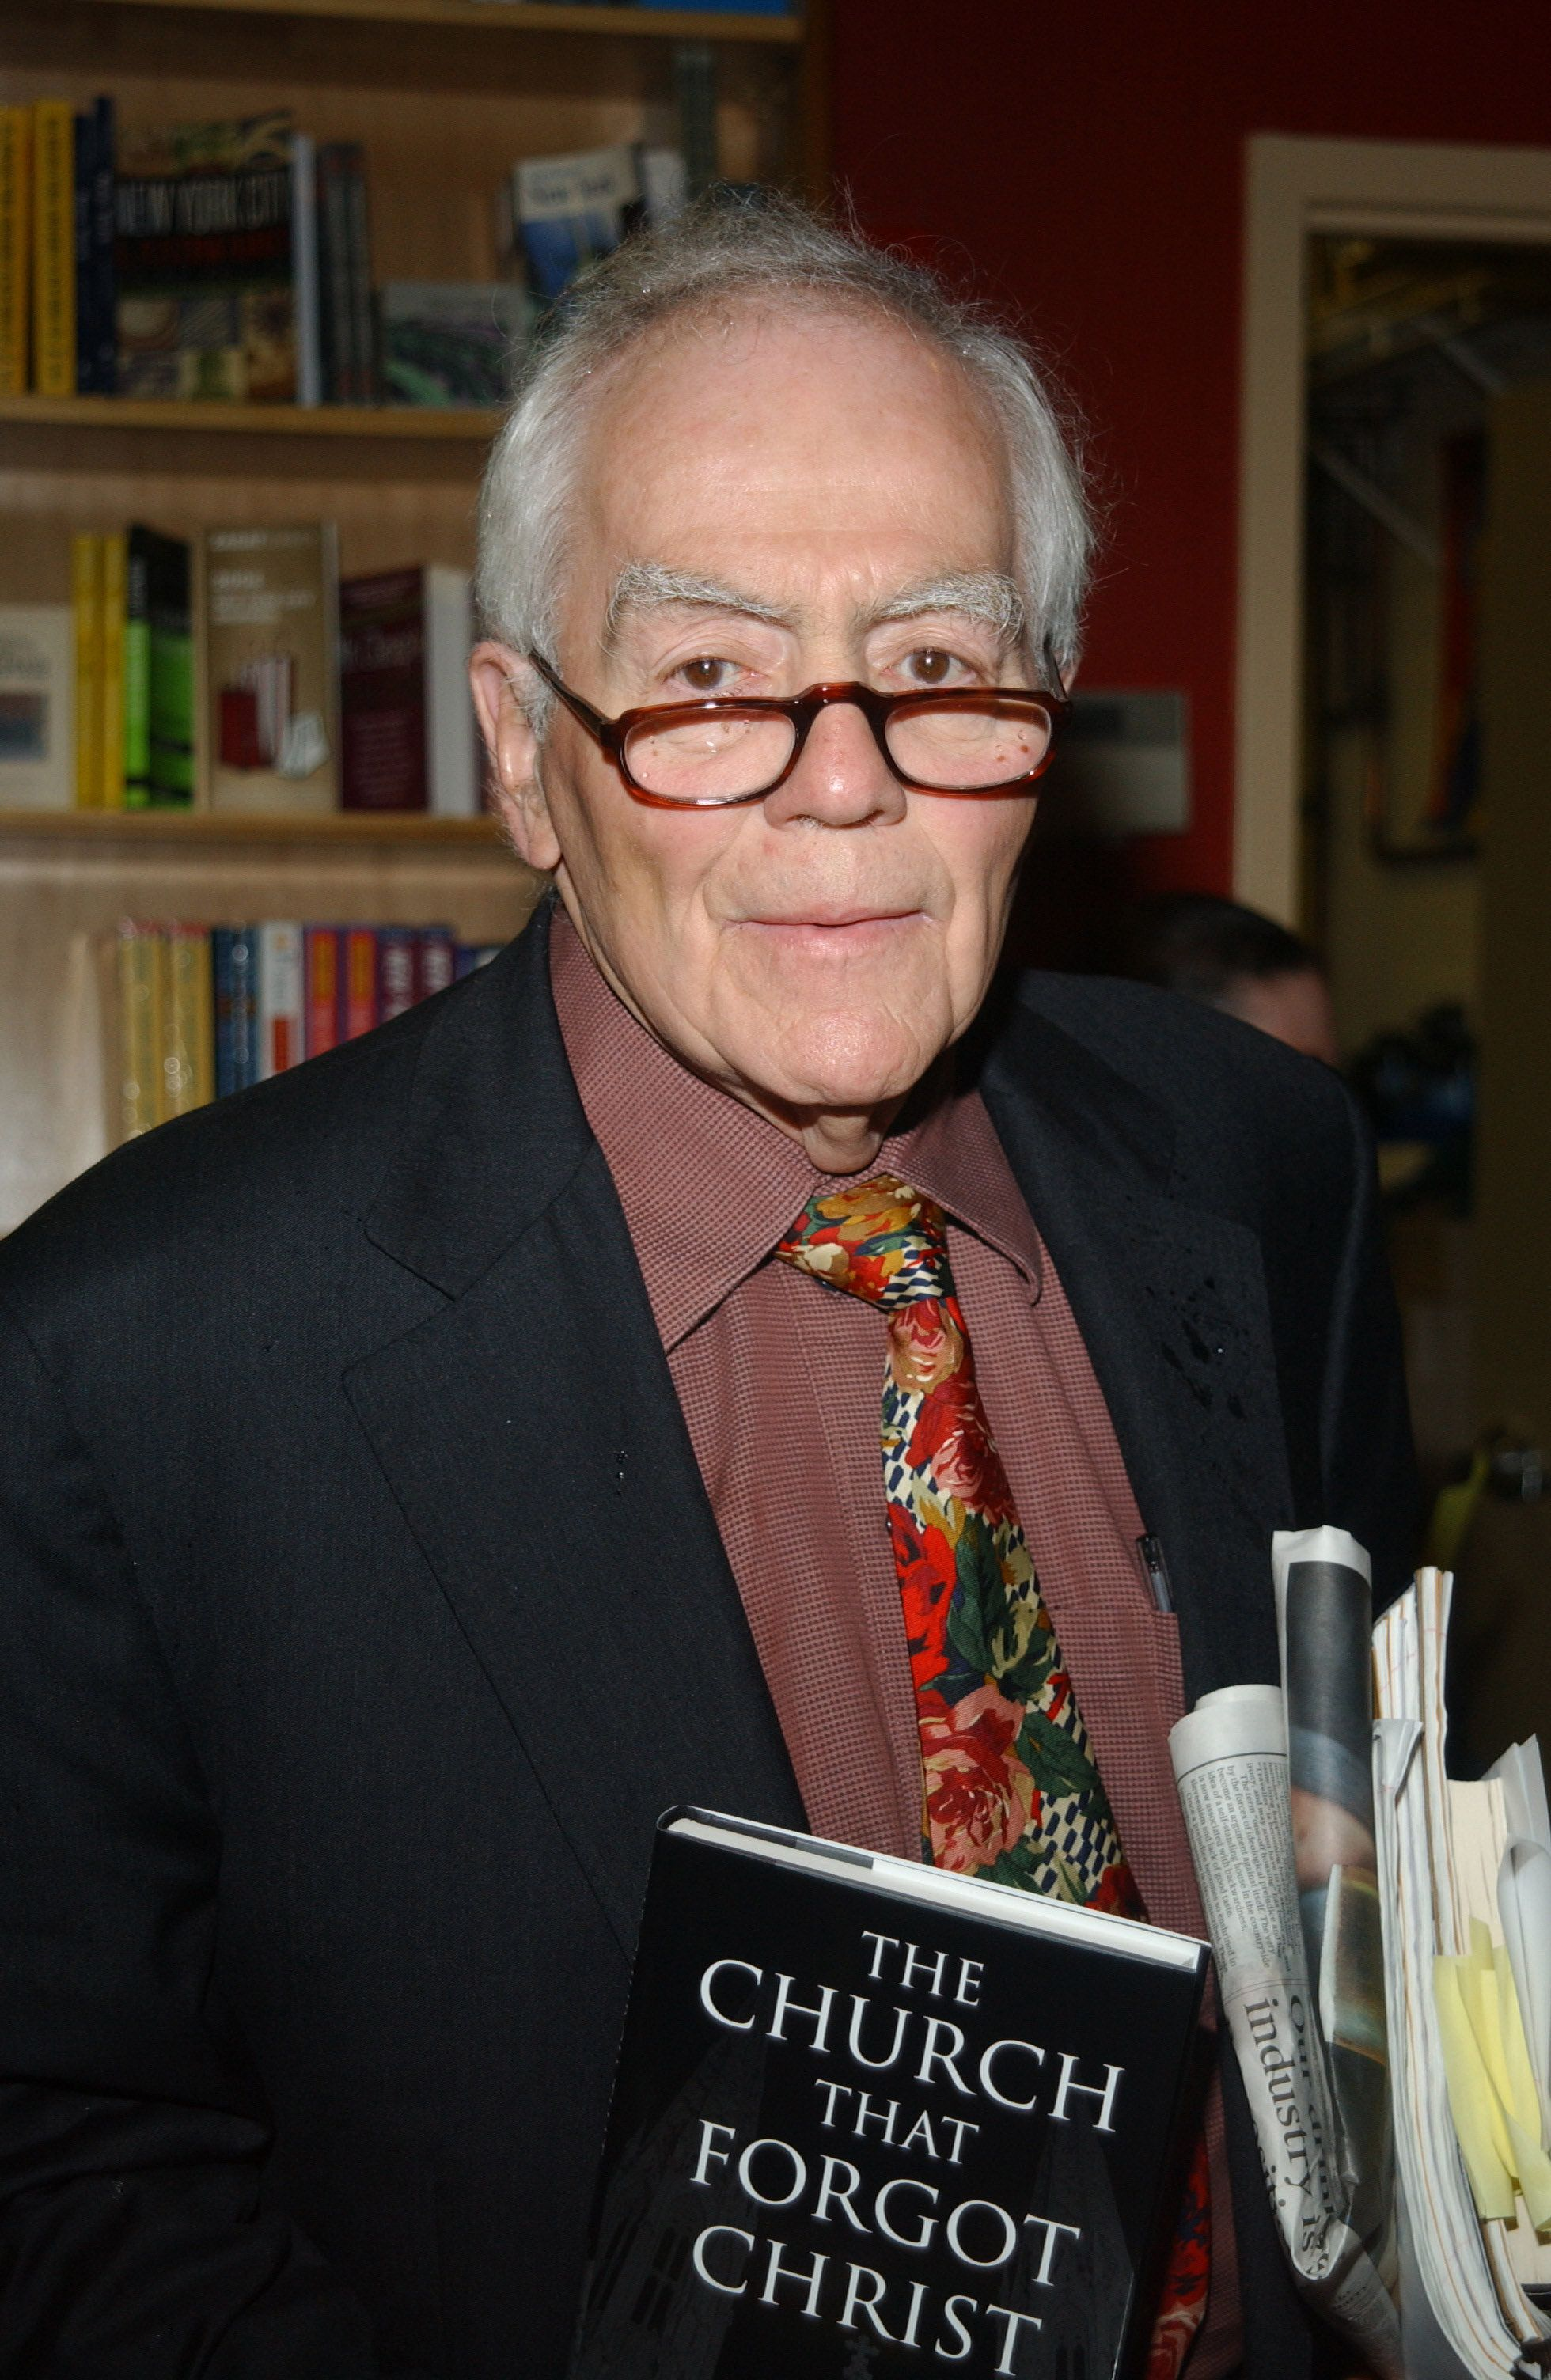 Jimmy Breslin died Sunday at age 88.